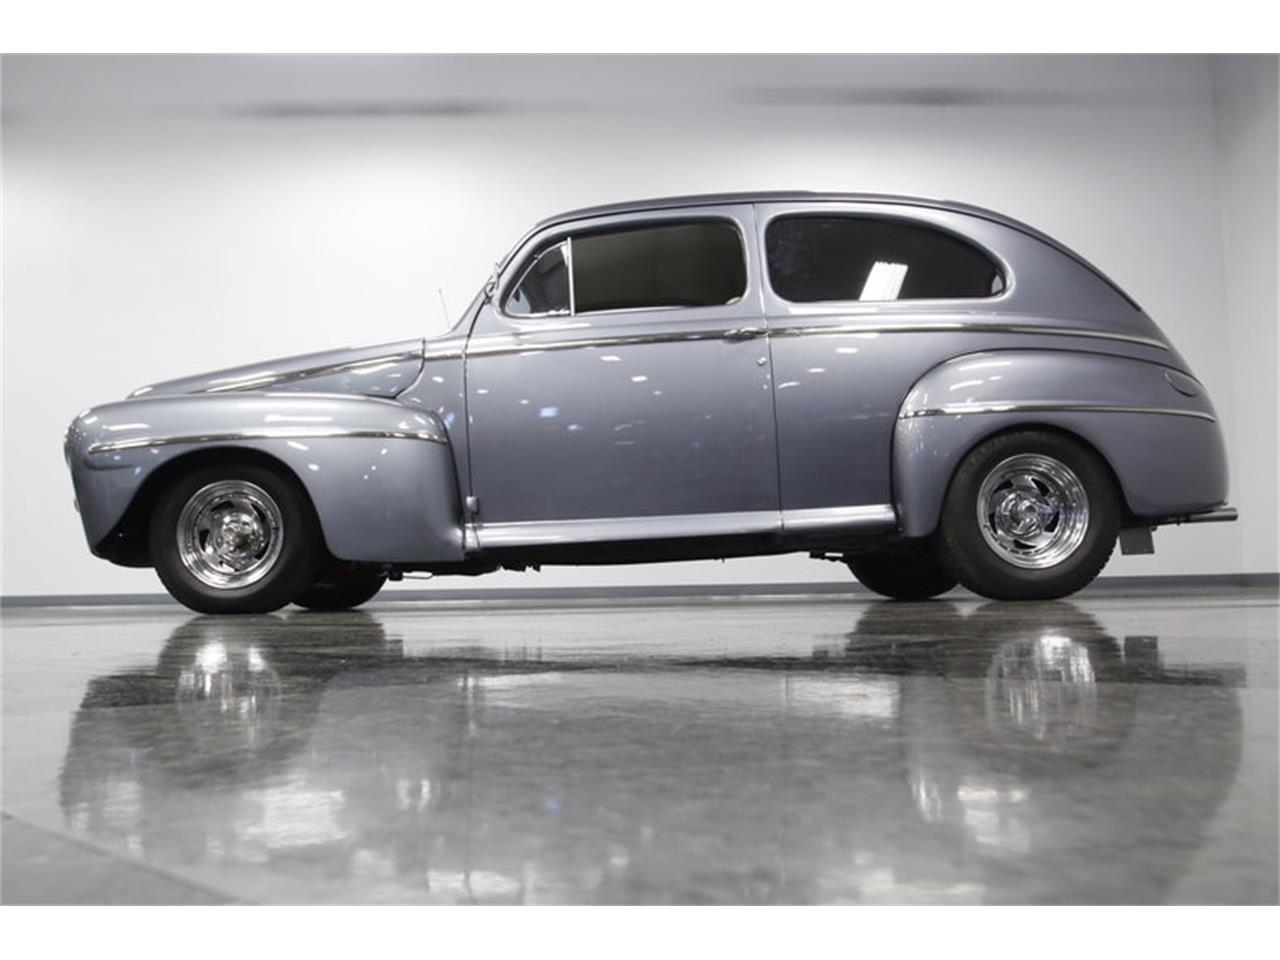 Large Picture of Classic 1947 Ford Tudor - $19,995.00 Offered by Streetside Classics - Charlotte - MHJ4